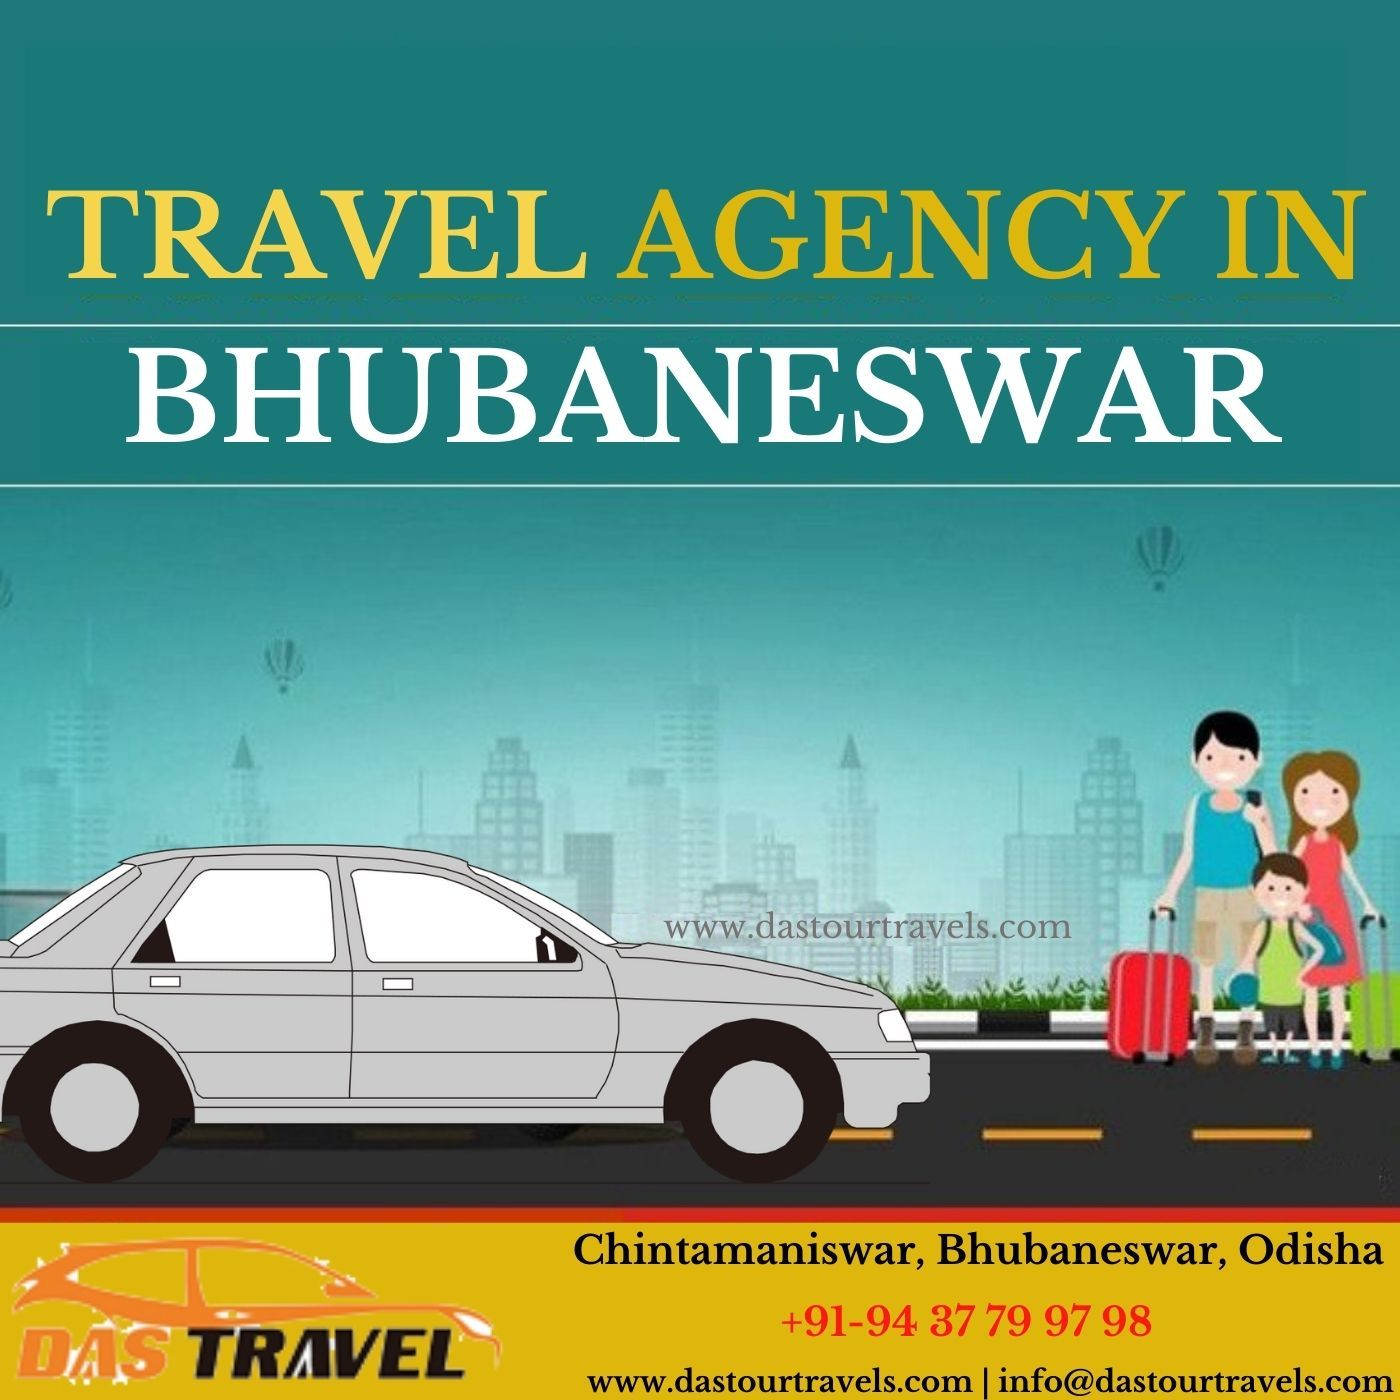 Working with a reputable travel Agency in Bhubaneswar reduces your headache regarding your travel. Dastourtravels is one of such travel agencies. For more inquiry, Please Visit our website : www.dastourtravels.com #DasTravels #Cab_Booking #TravelAgency #Taxi_Service #travel #bhubaneswar #Odisha